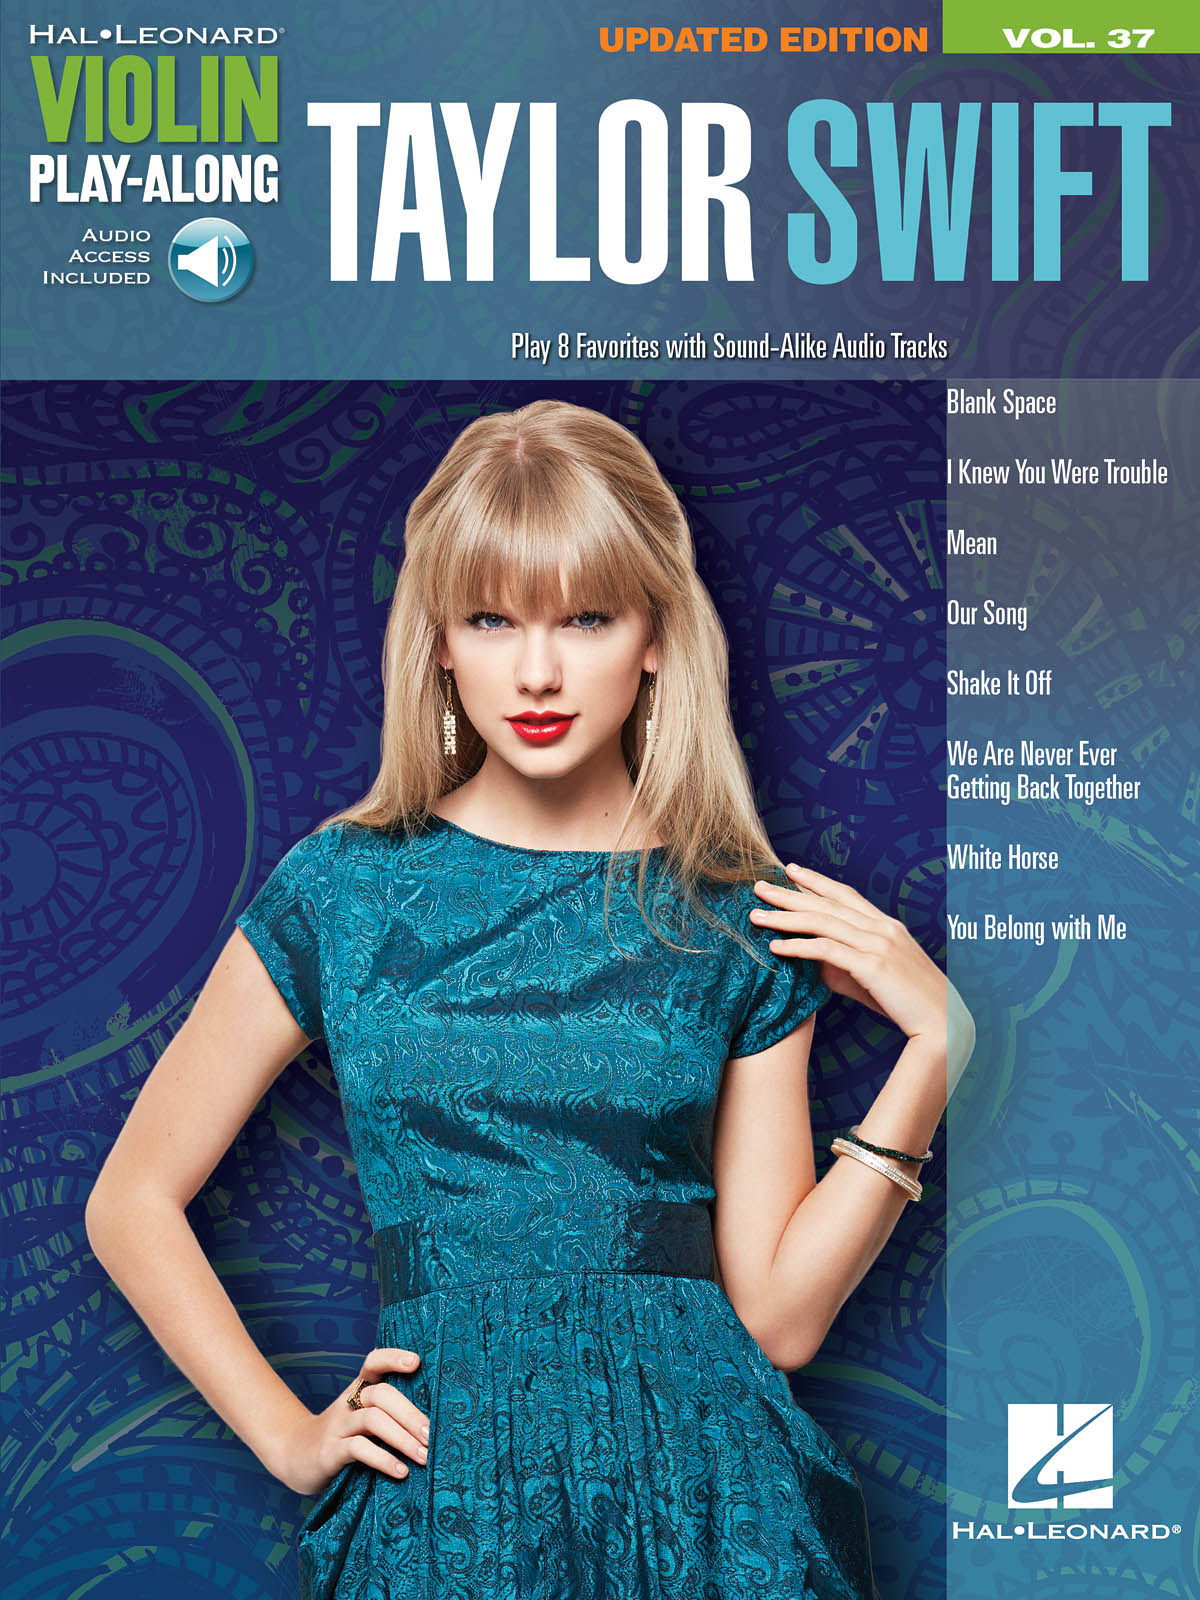 Violin Play-Along Volume 37: Taylor Swift (Book/Online Audio) (Hal Leonard Violin Play Along) (Includes Online Access Code)